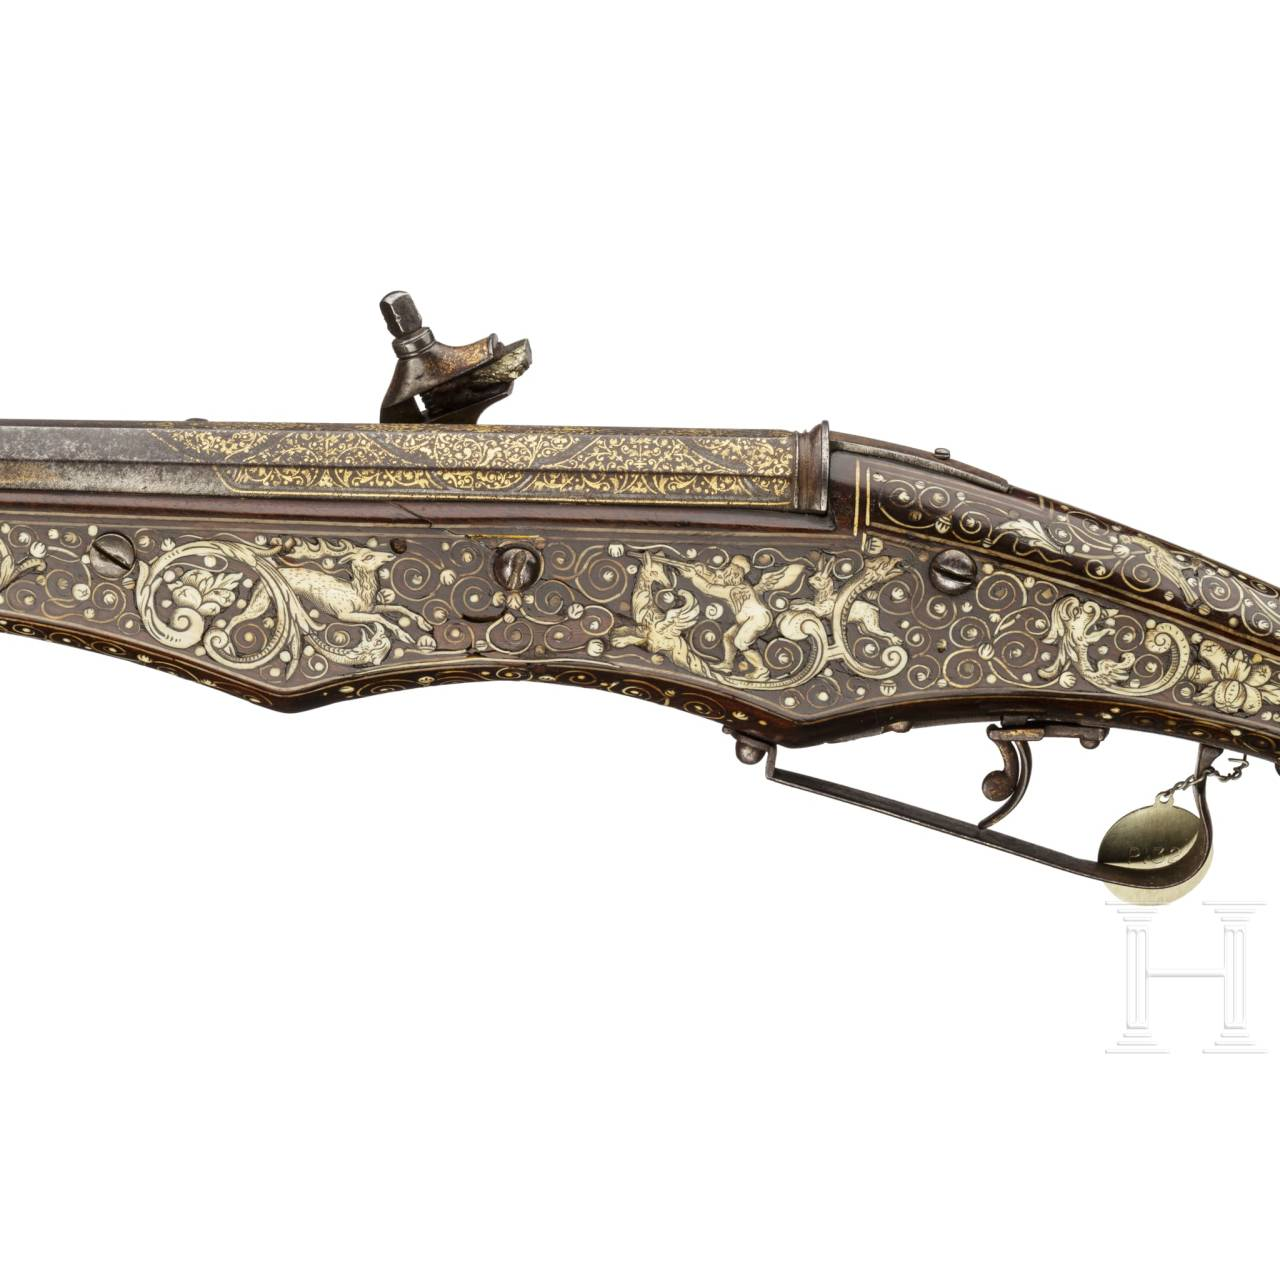 A rare, South German wheellock pistol for two superimposed loads, with inlays in gold and bone, circa 1600